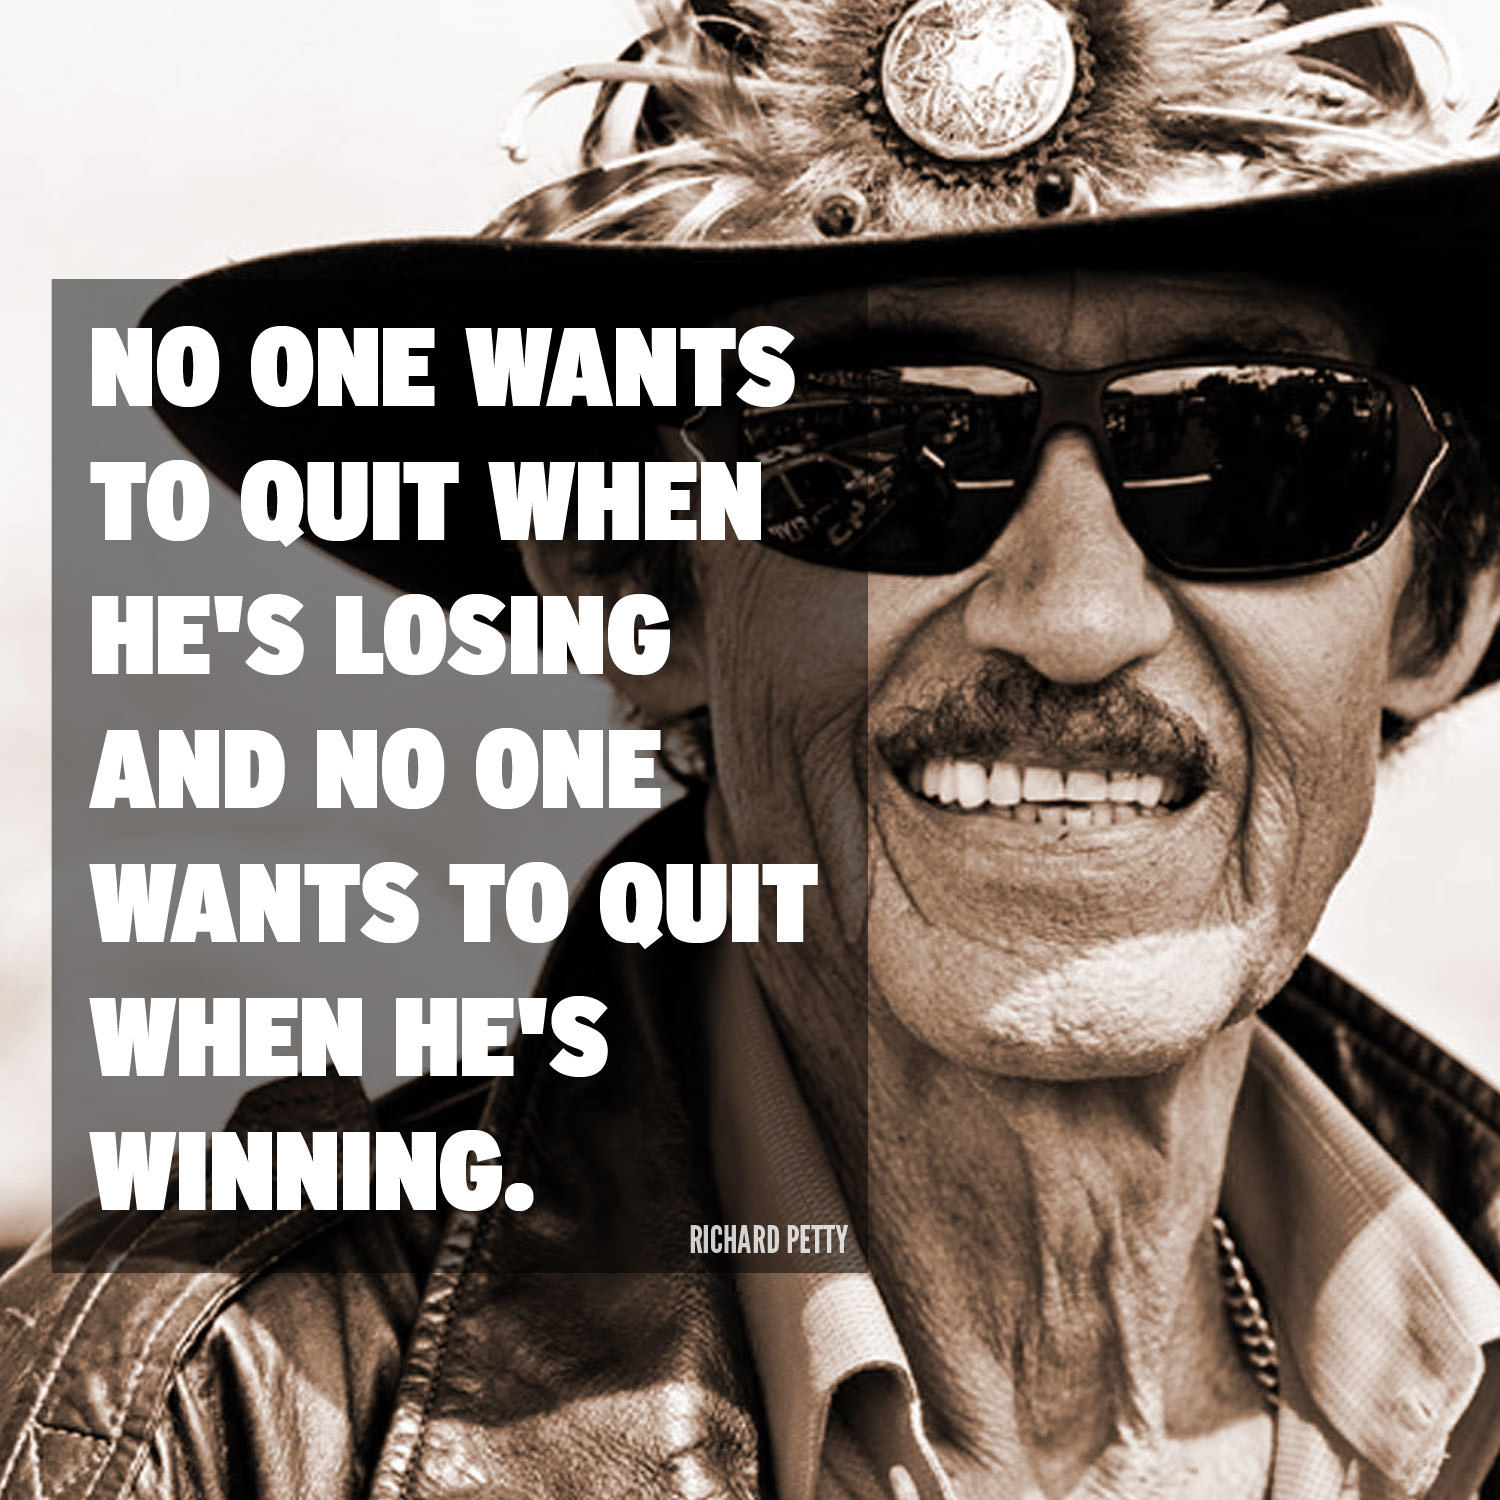 No one wants to quit when he's losing and no one wants to quit when he's winning. - Richard Petty